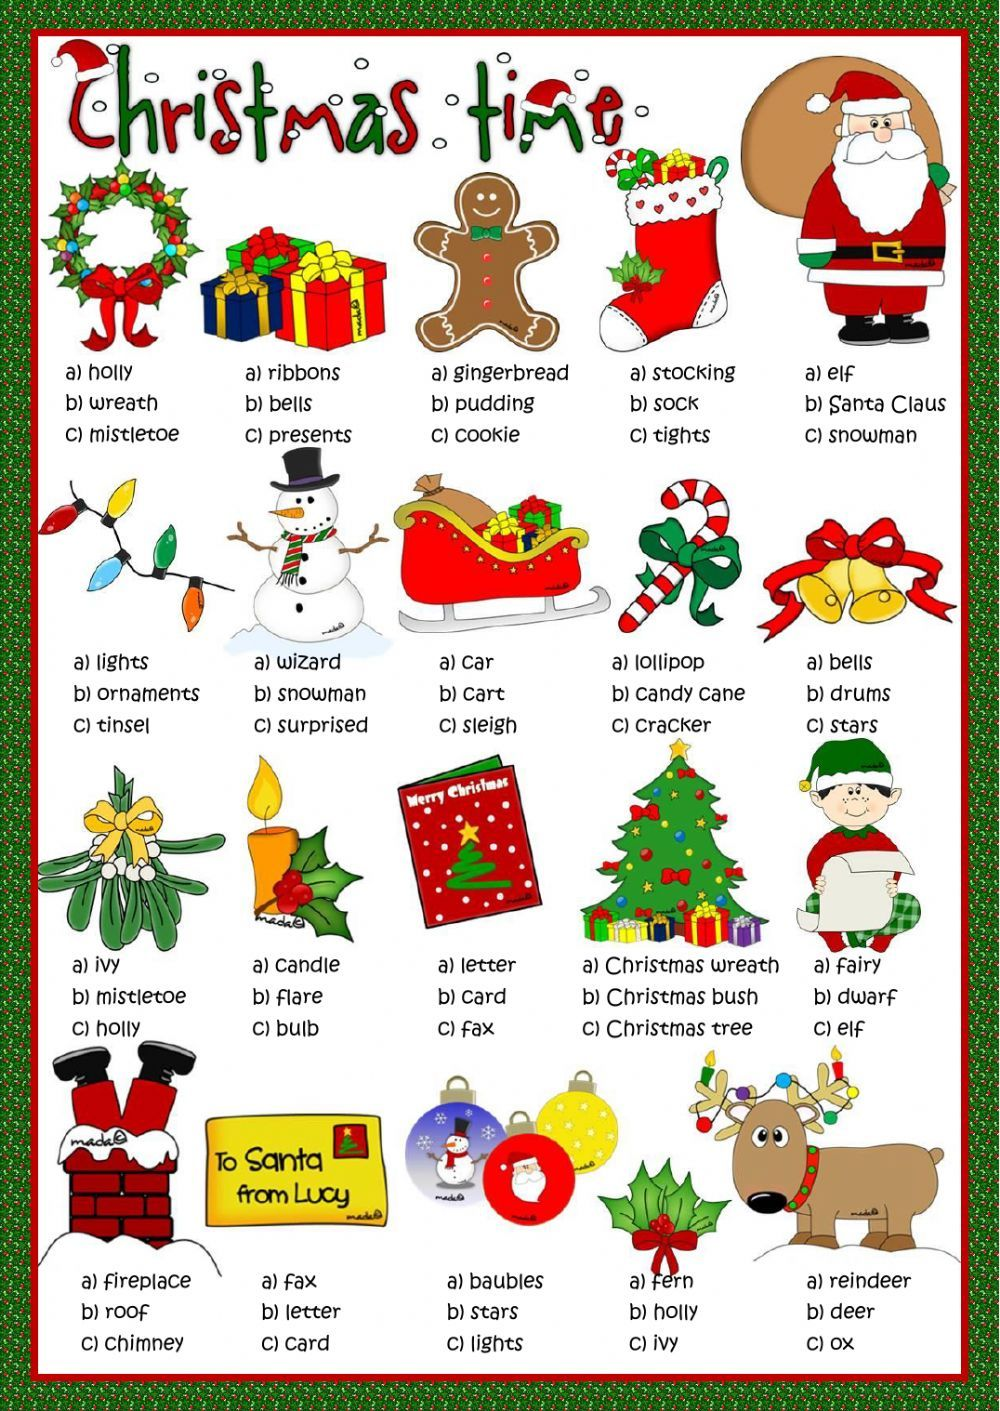 Christmas Interactive And Downloadable Worksheet You Can Do The Exercises Online Or Download The Worksh Christmas Worksheets Christmas Lesson Christmas School